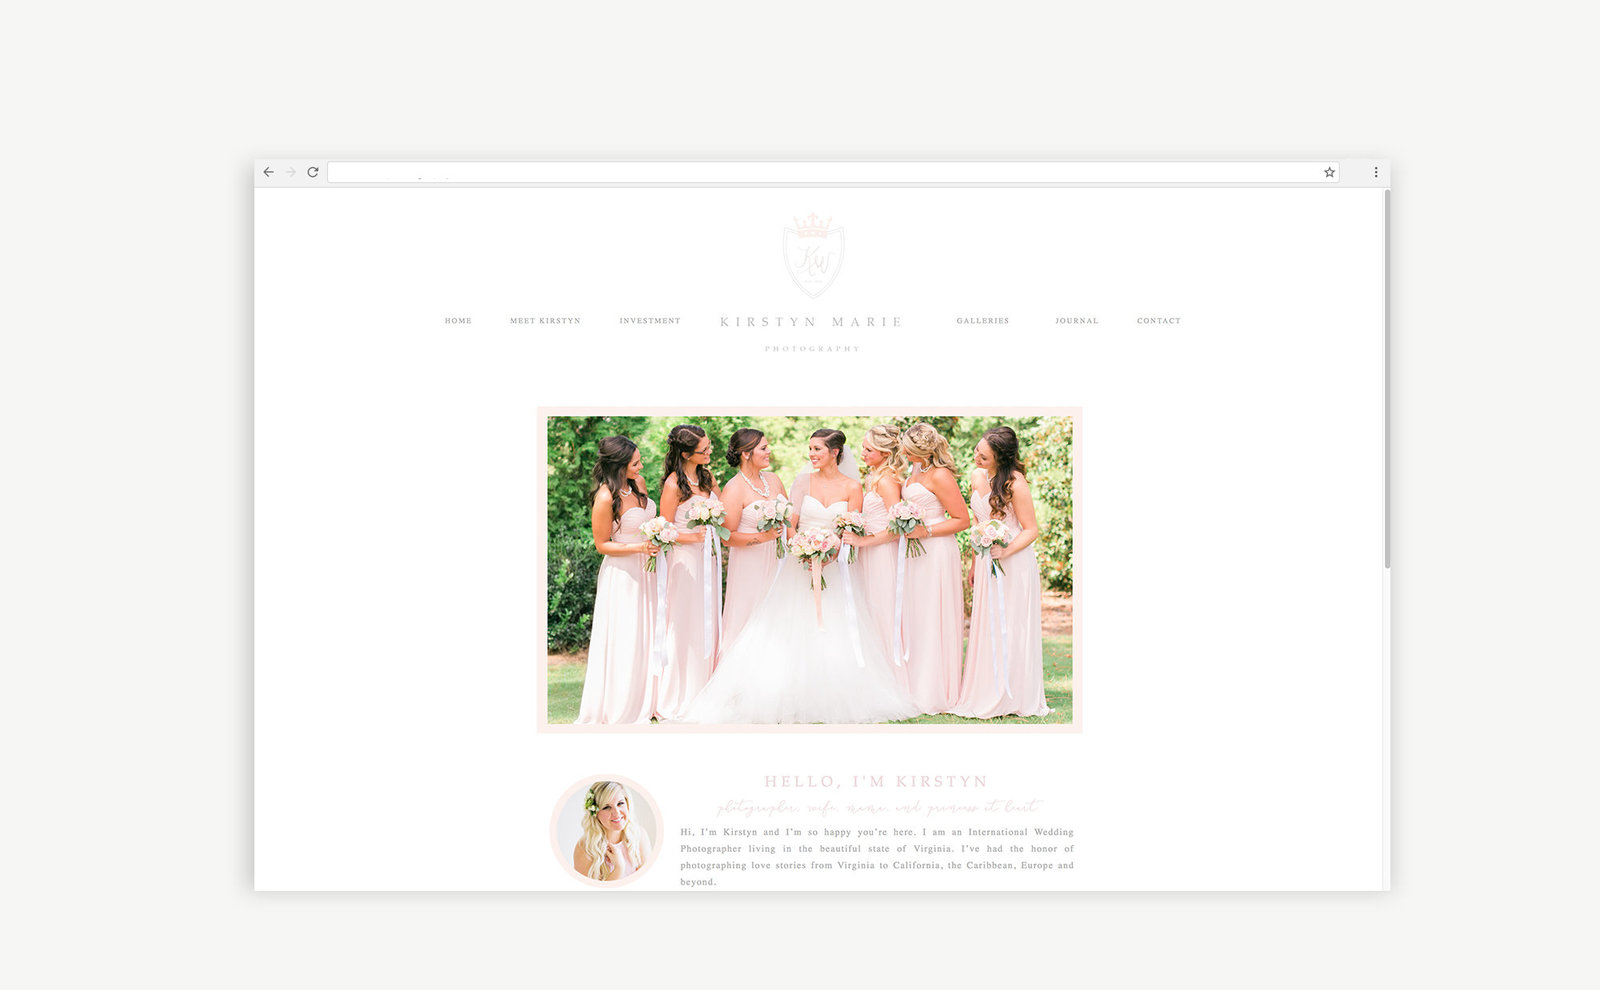 branding-for-photographers-web-design-kirstynmarie-01